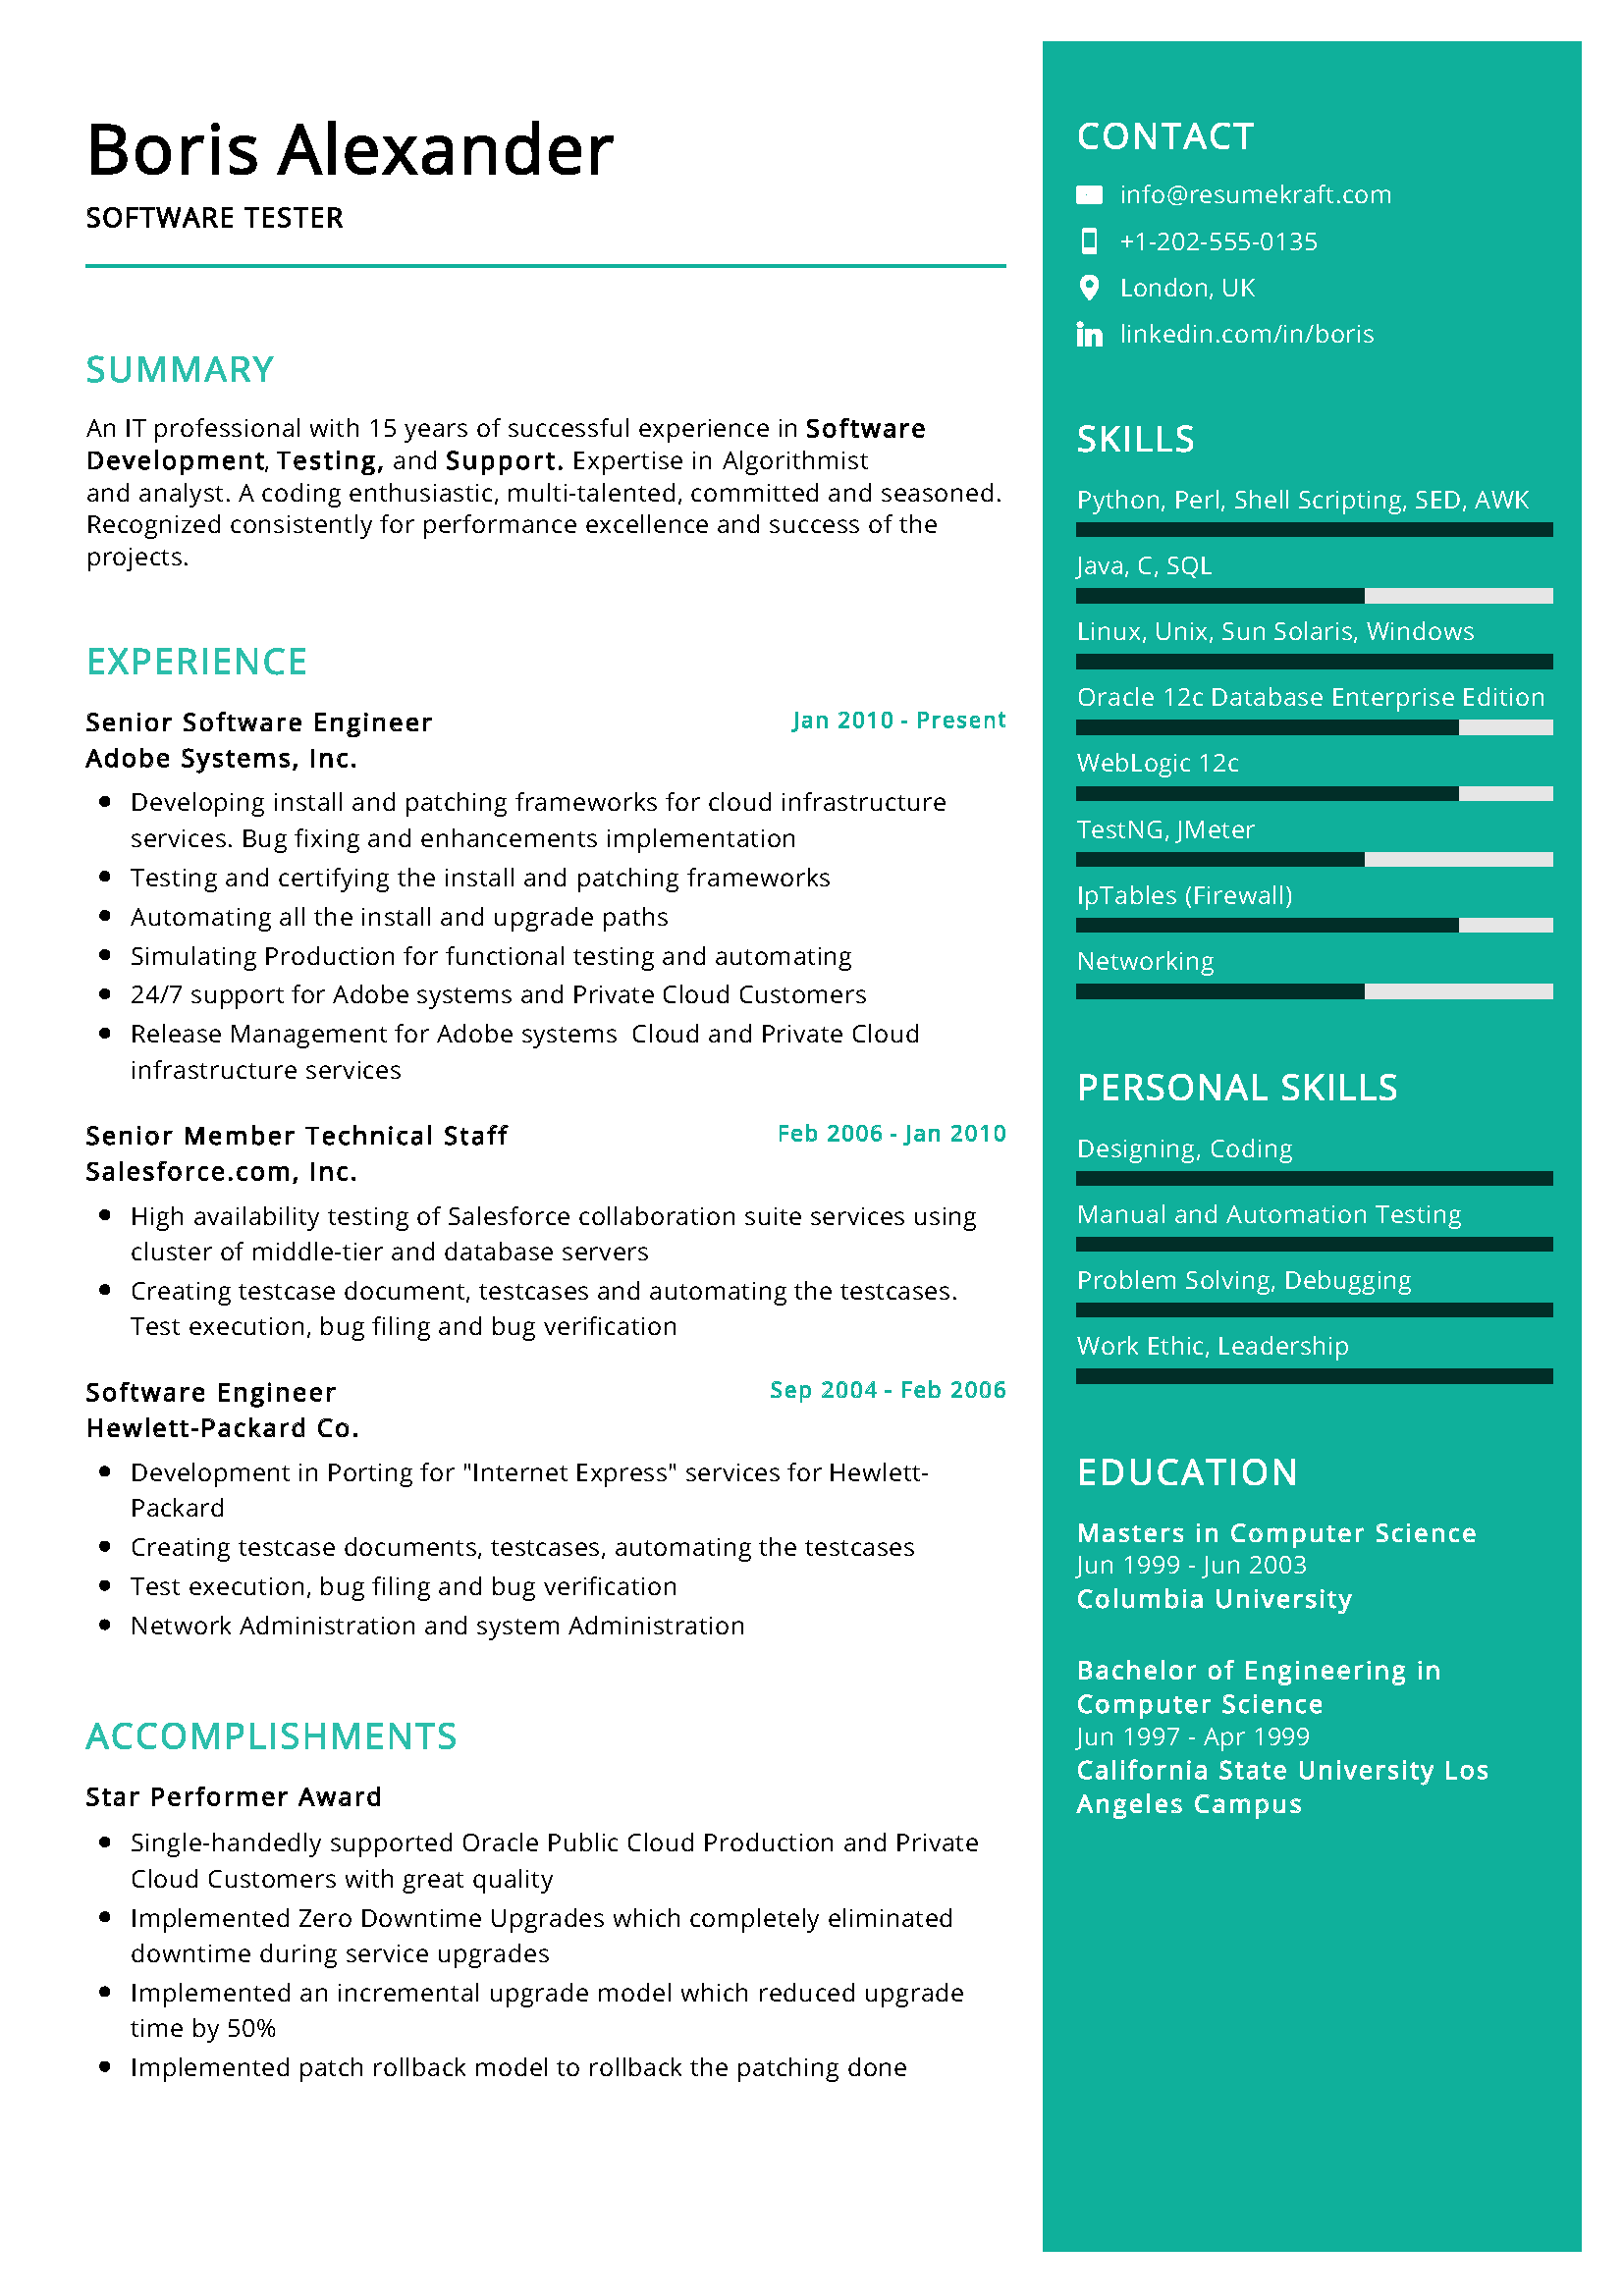 Software Tester Sample Resume in 2020 Professional